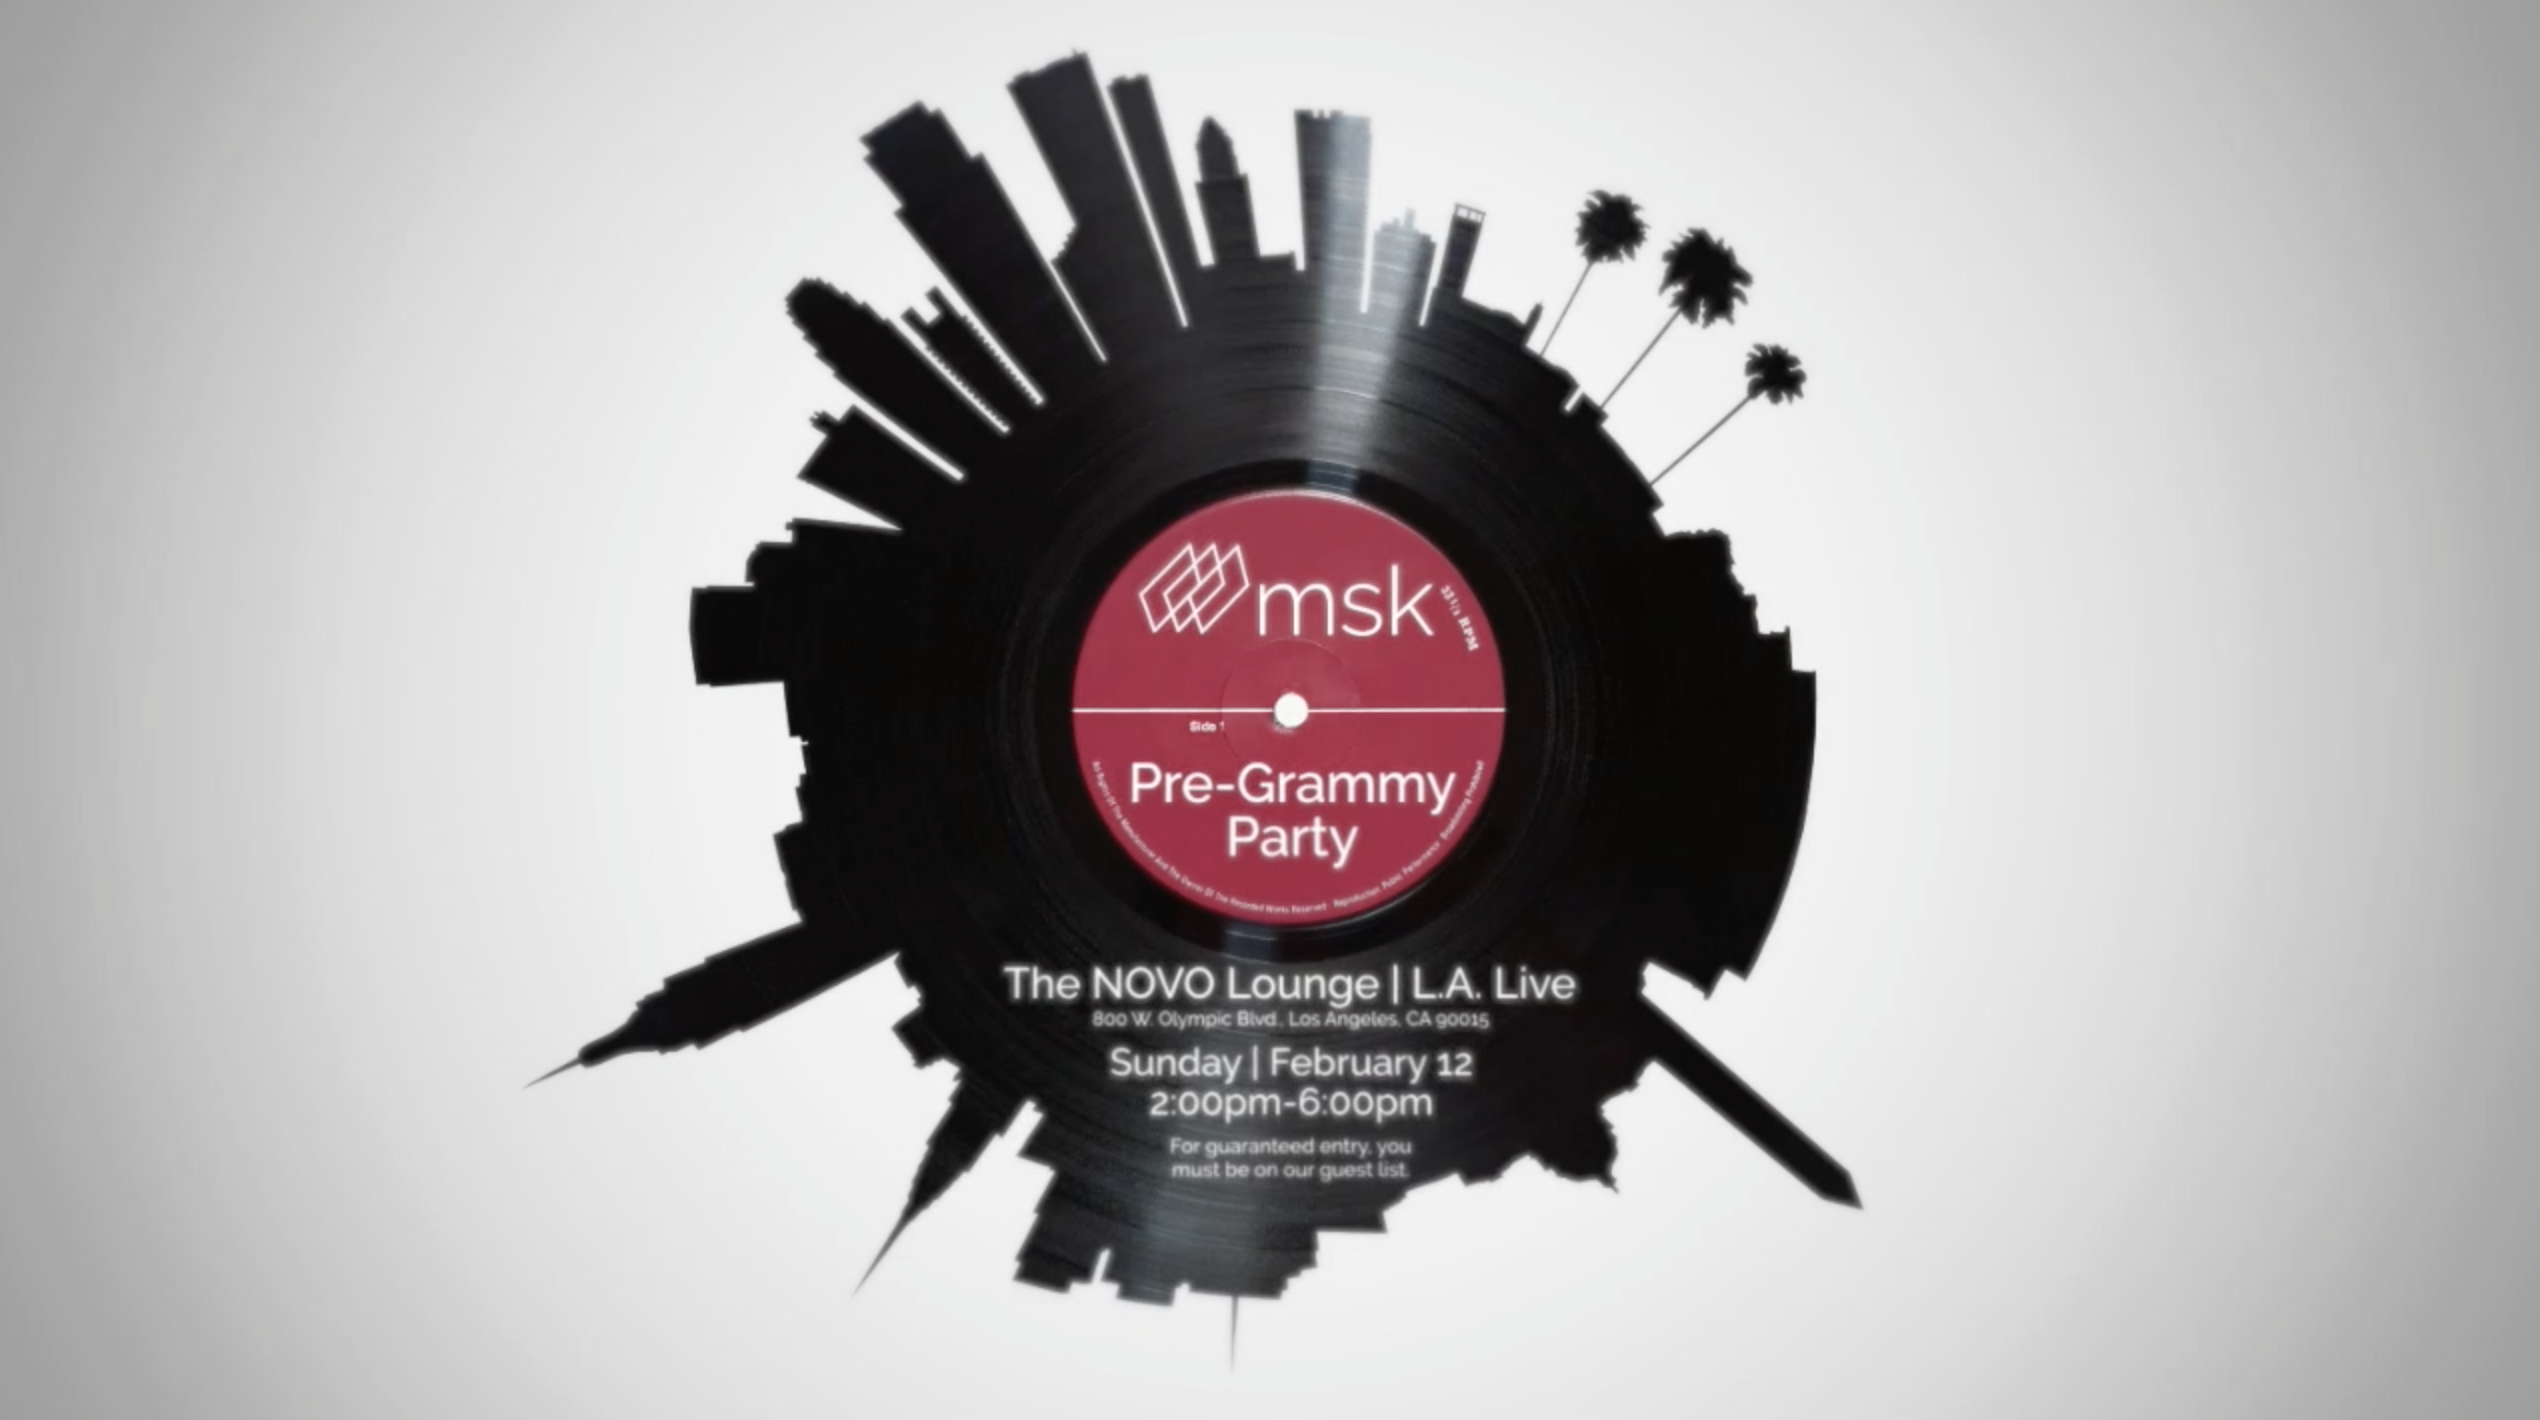 2017 MSK Pre-Grammy Party Invitation